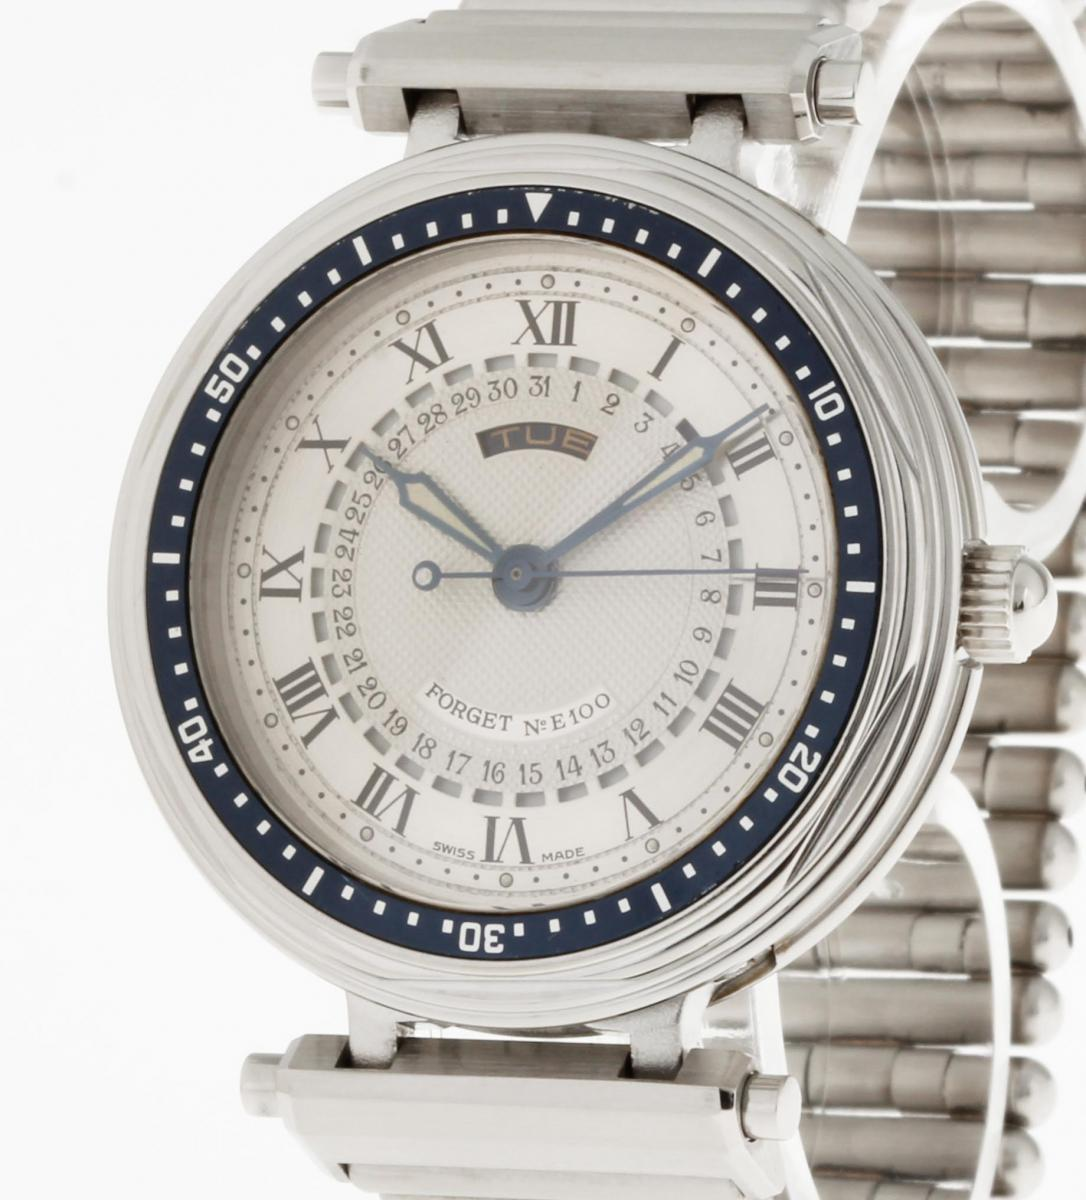 Forget Chronometer